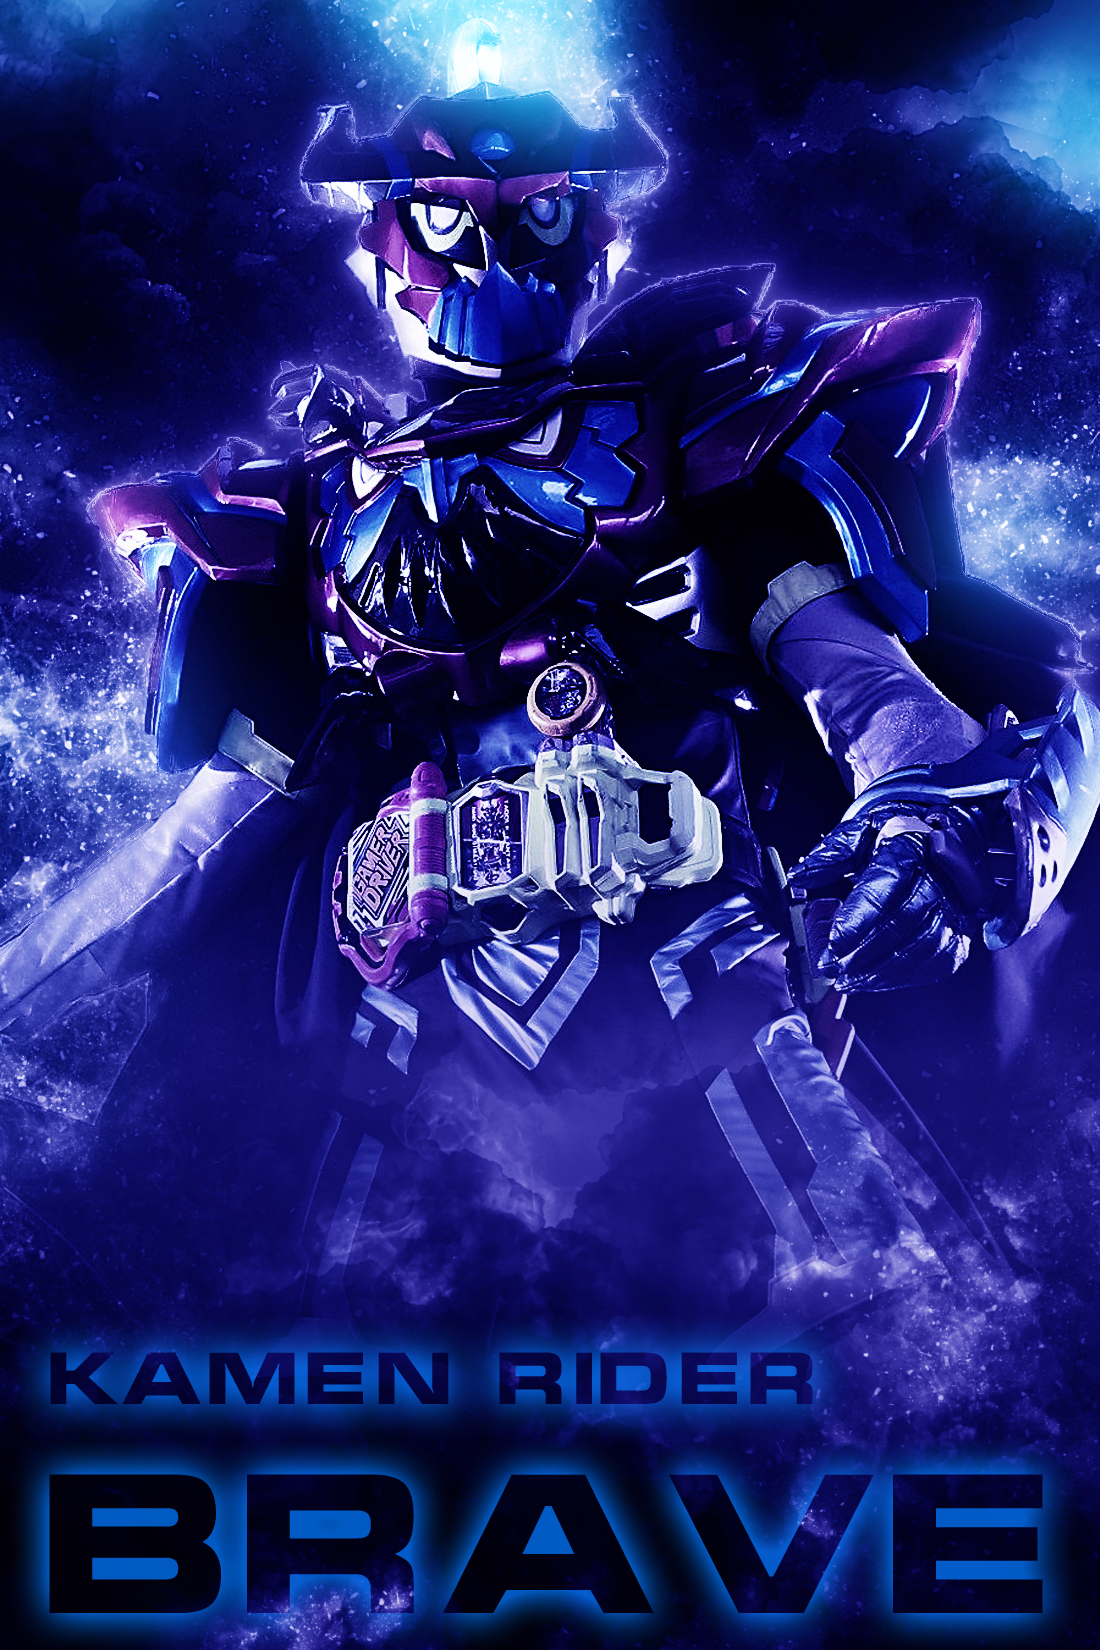 kamen_rider_brave_smartphonne_wallpaper_by_phonenumber123